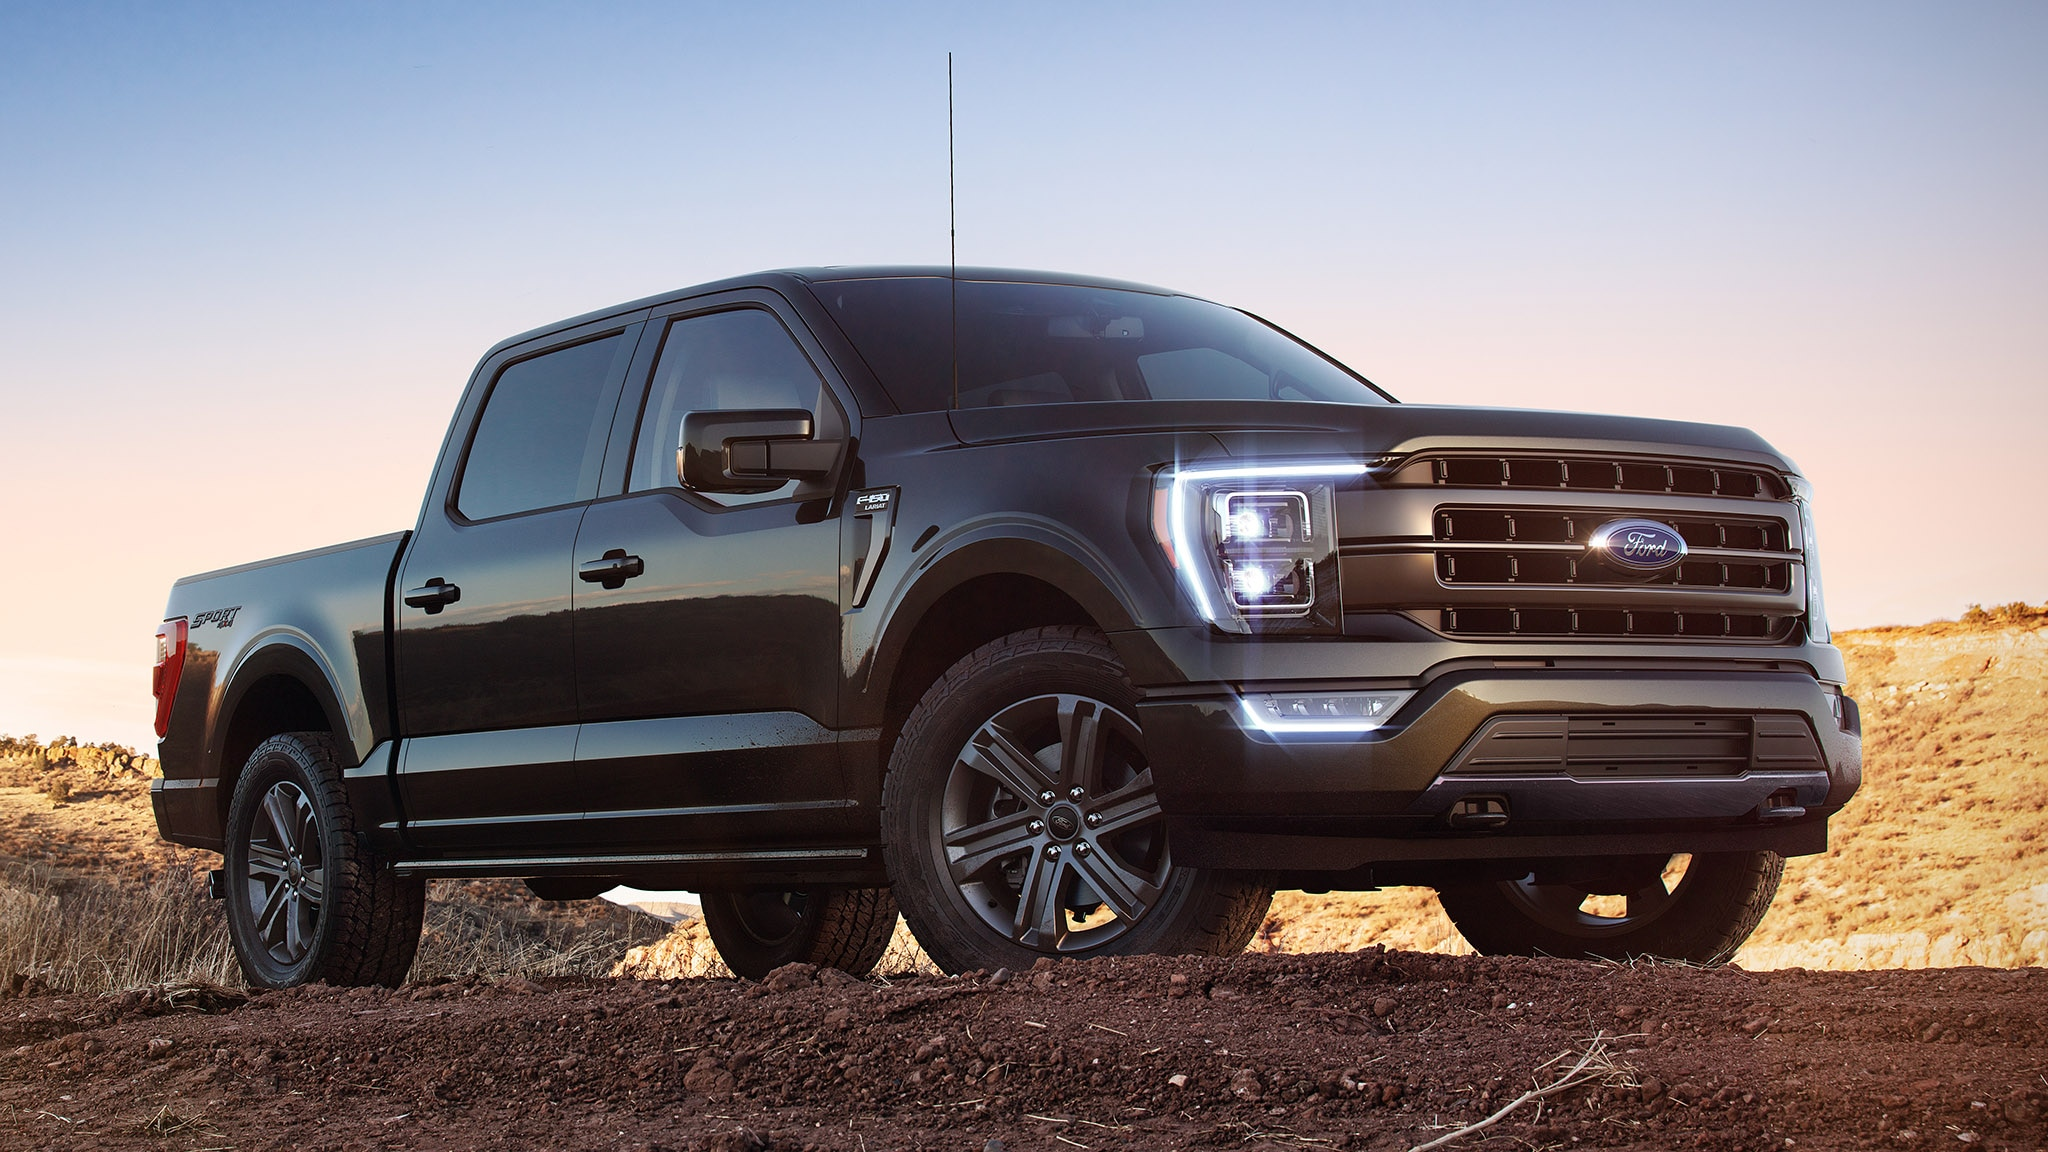 2021 Ford F 150 Pickup Truck Gets Detailed In Photos 2048x1152